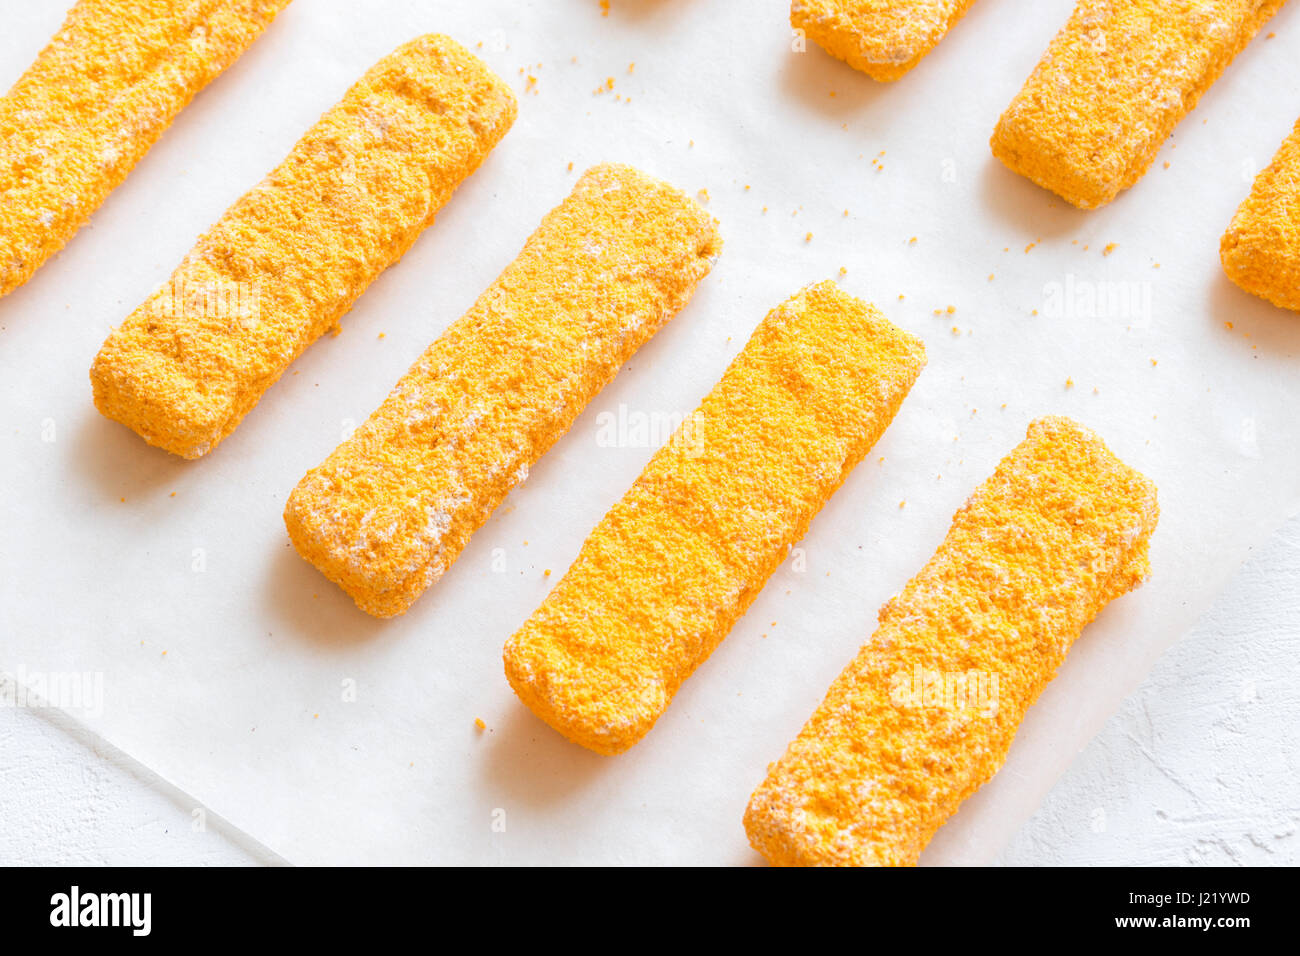 Frozen fish sticks, fish fingers on paper and white background, copy space. Convenience food, seafood, fish food - Stock Image